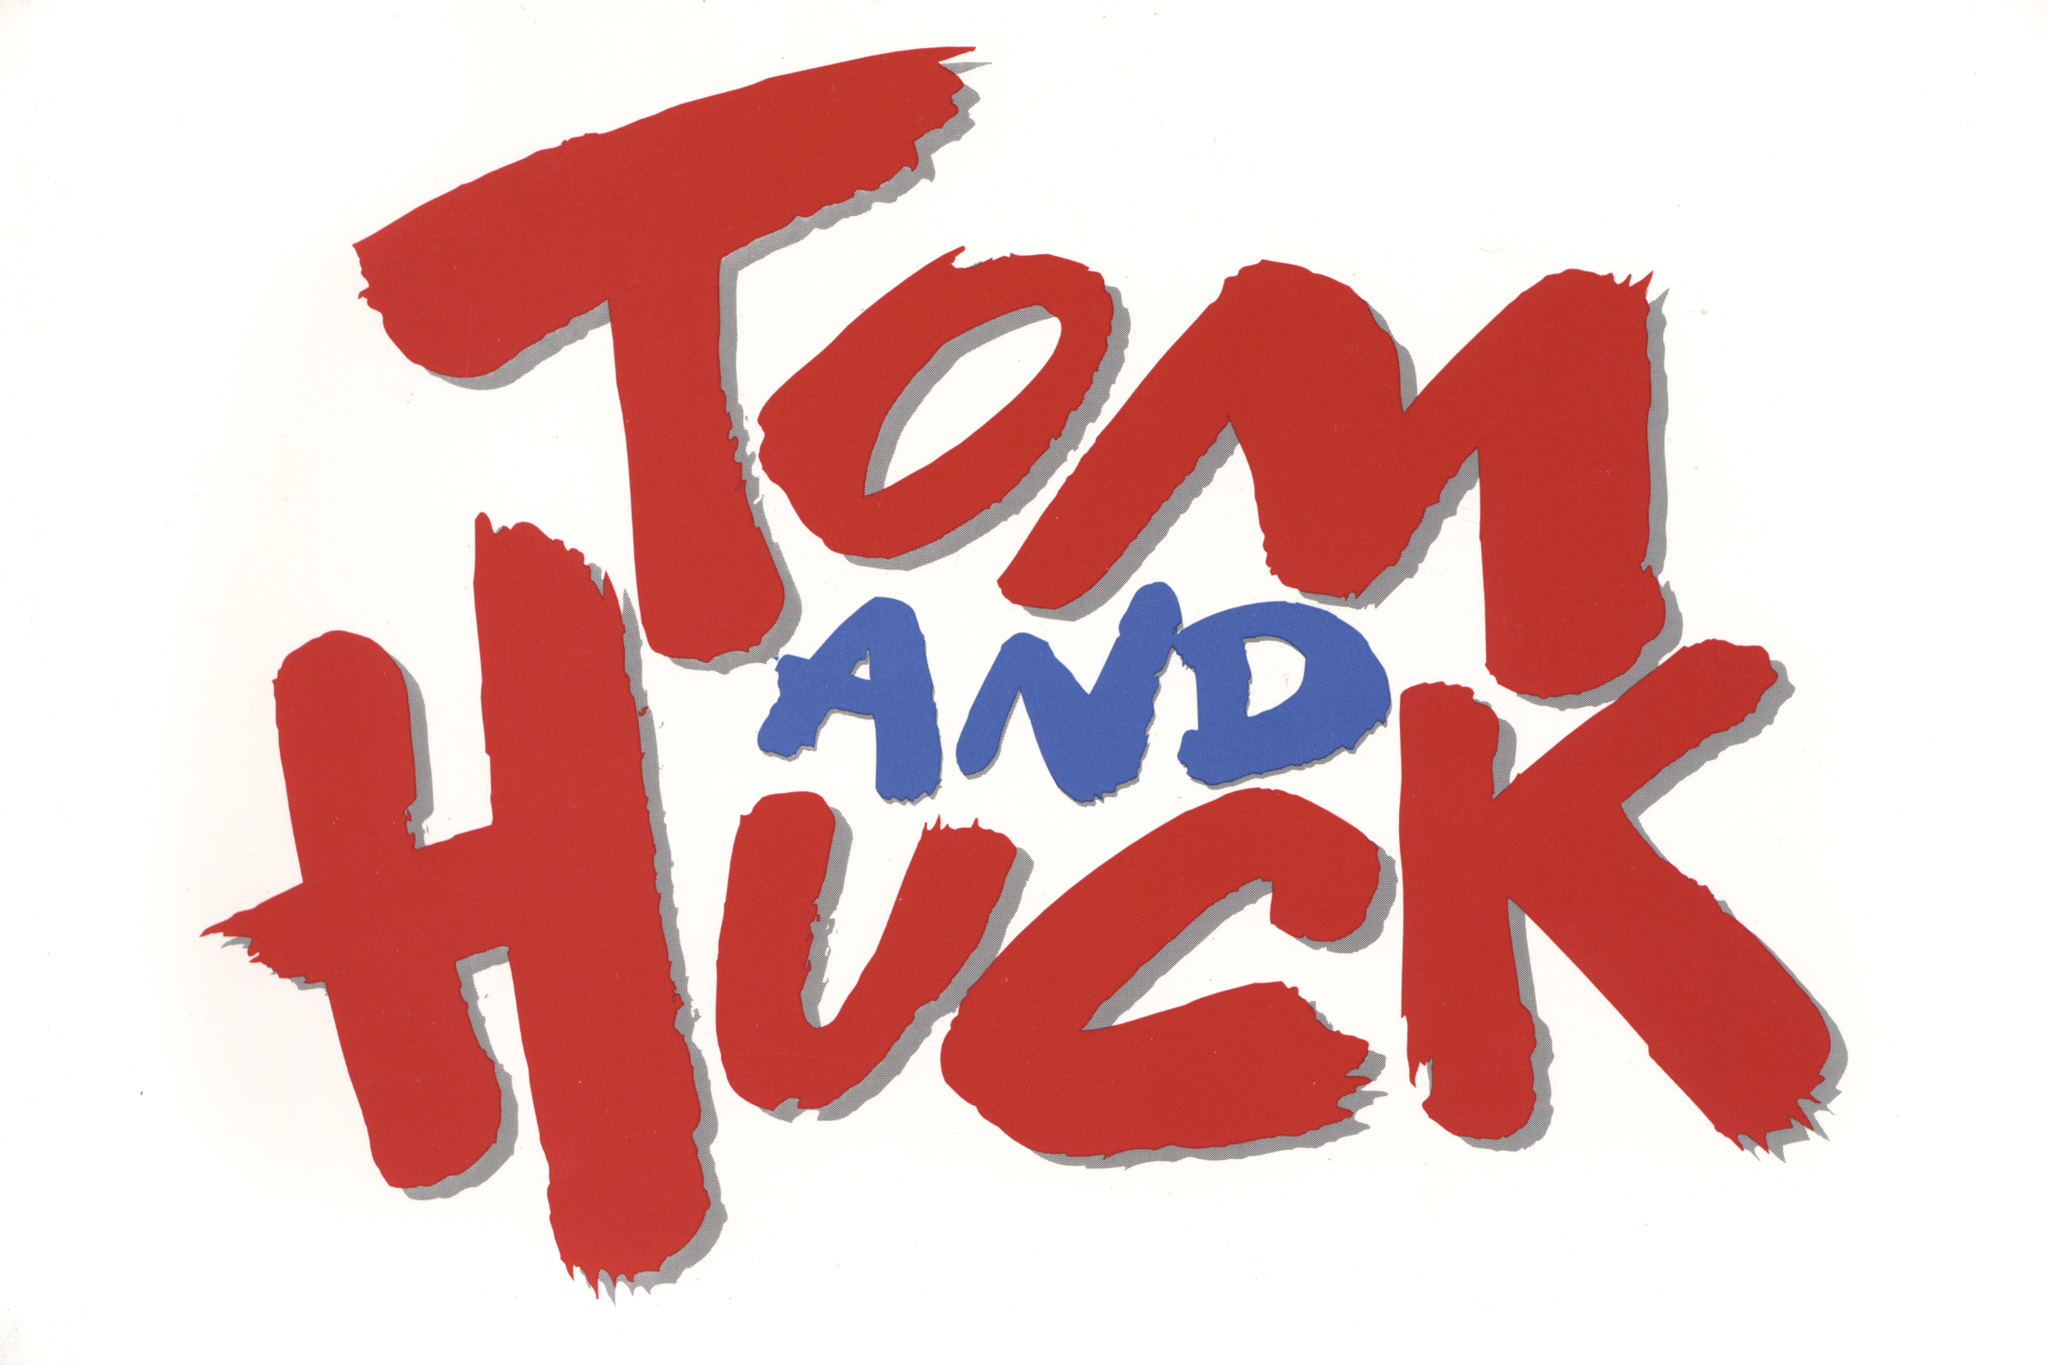 Tom and Huck logo. Copyright Buena Vista Digital.